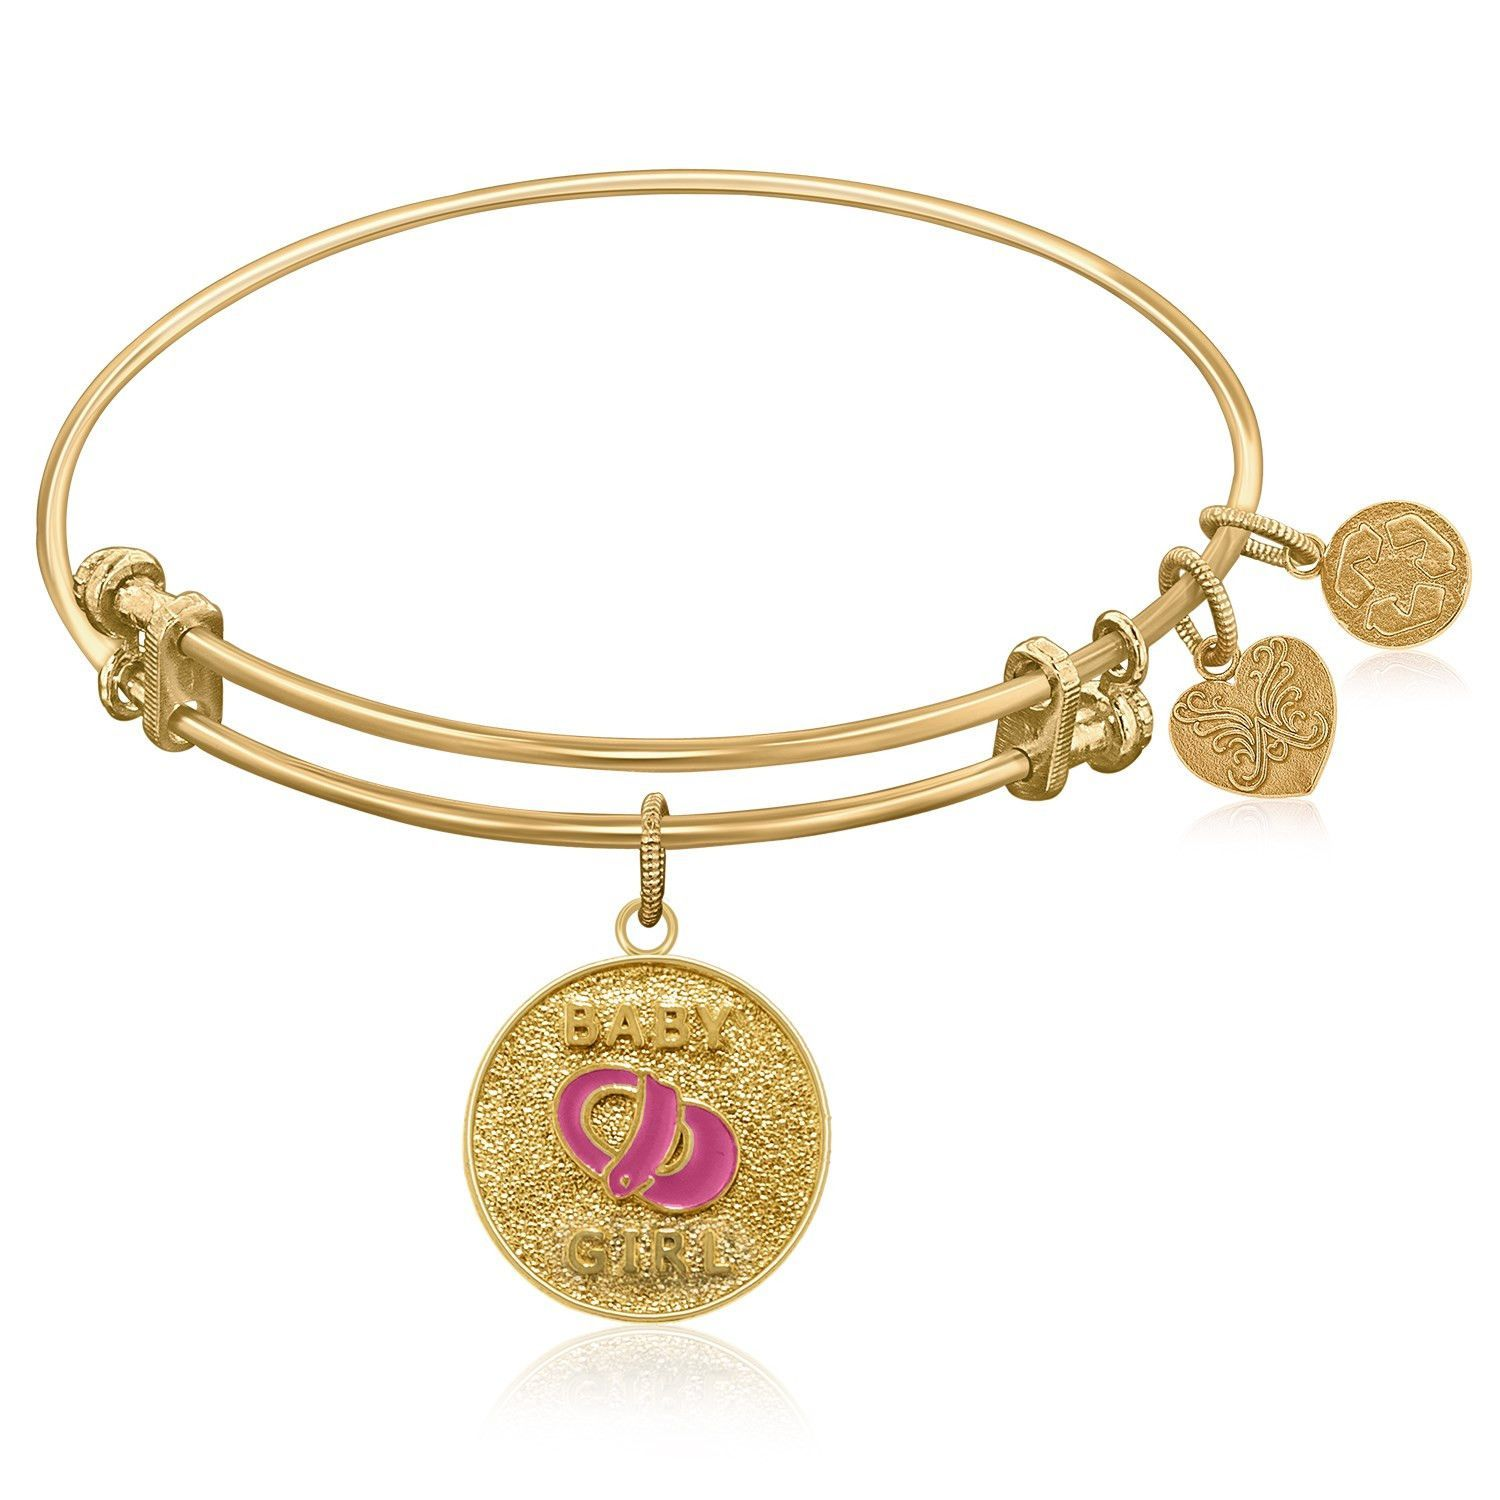 Expandable bangle in yellow tone brass with baby girl symbol